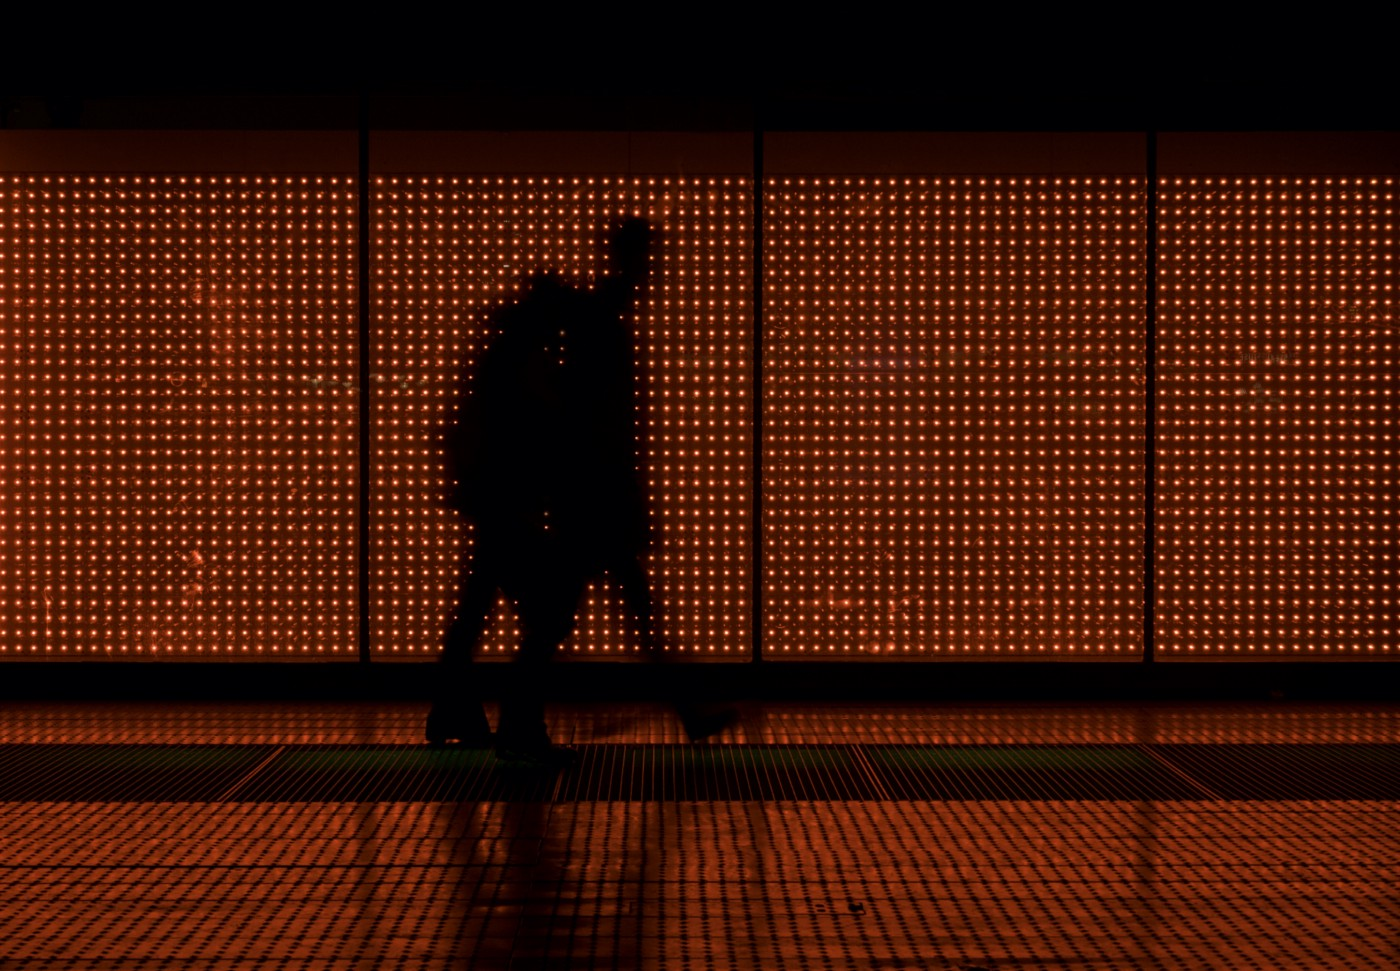 Two people walking, silhouetted against a wall covered with small red lights.